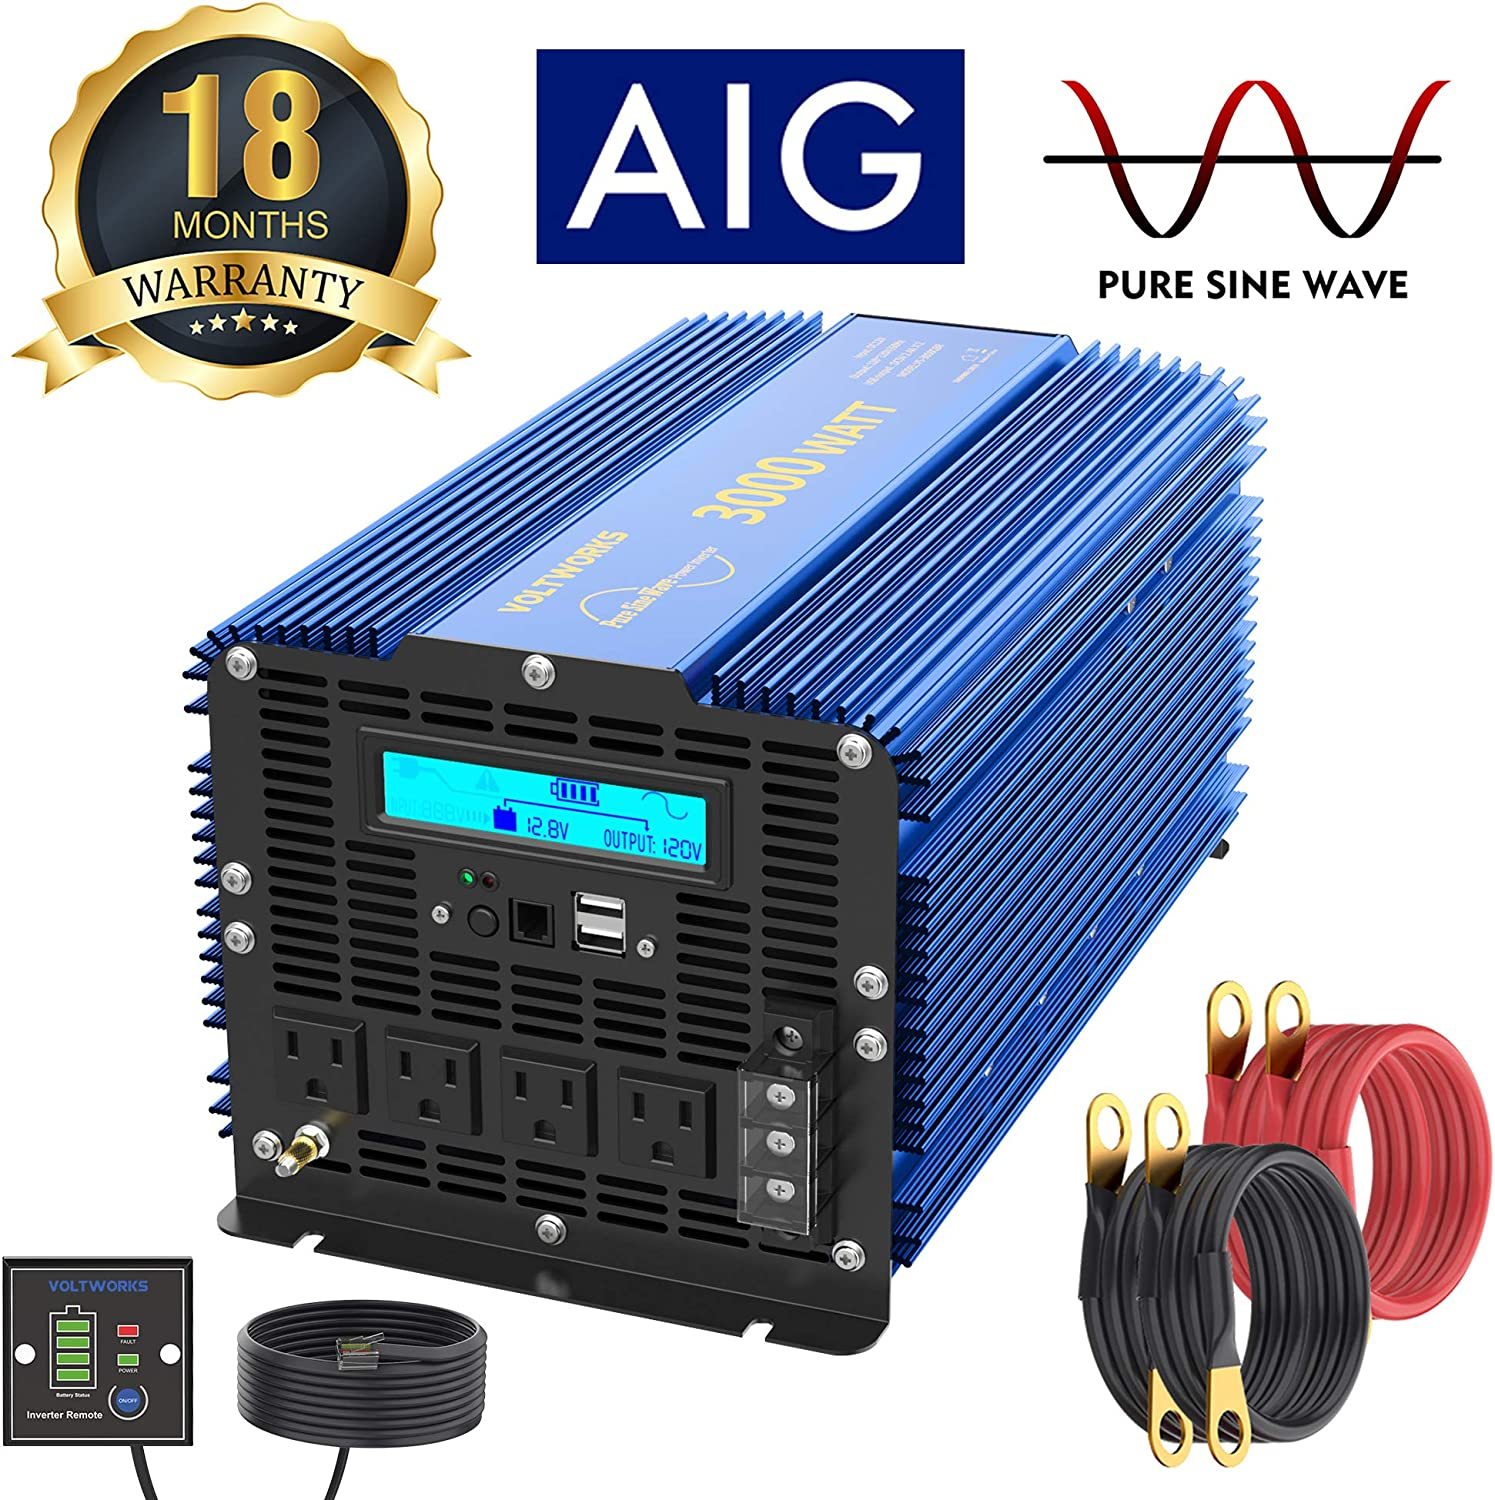 3000Watt Pure Sine Wave Power Inverter 12V DC to 120V AC with 4 AC Outlets Dual 2.4A USB Ports Remote Control & LCD Display by VOLTWORKS